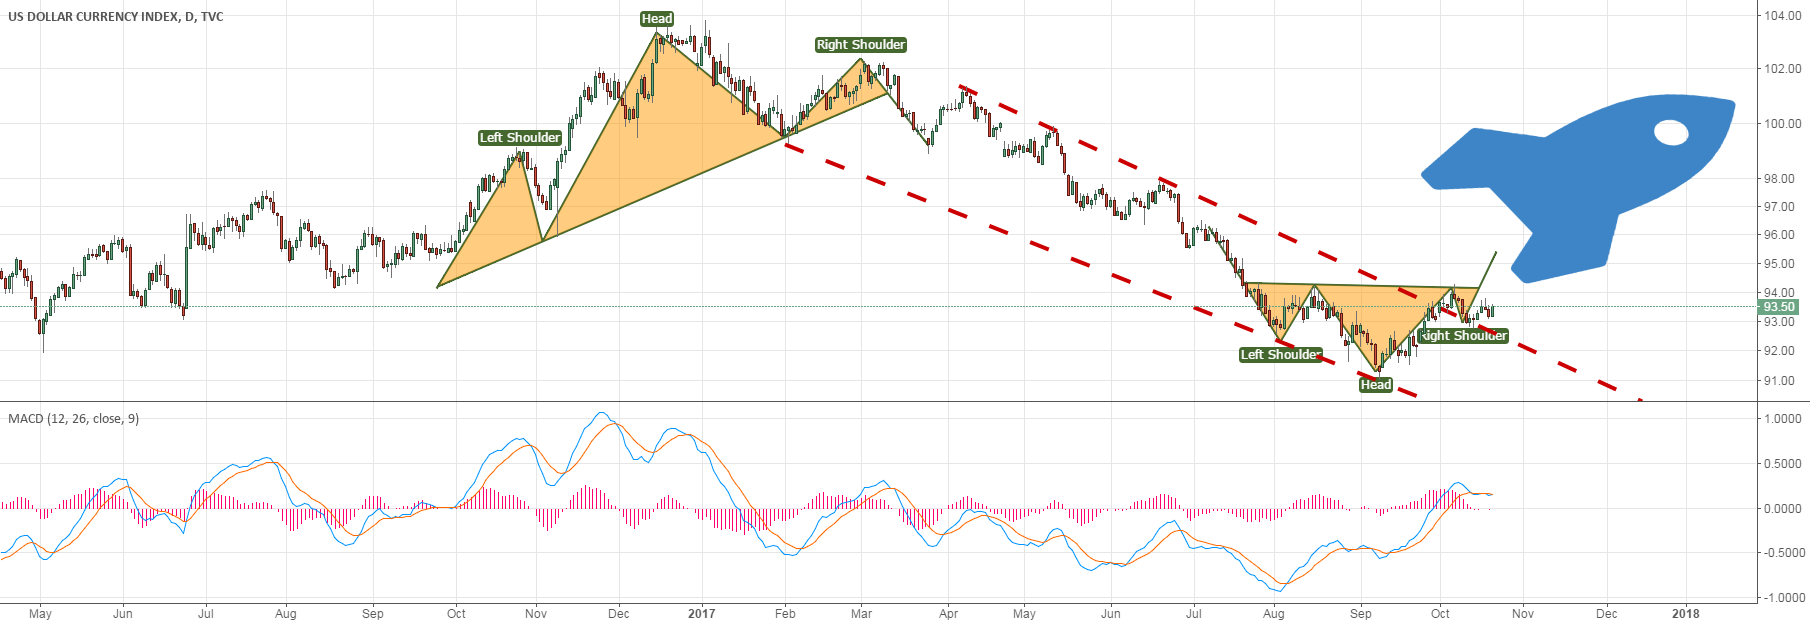 DXY will turn into bullish if head and shoulder bottom formed